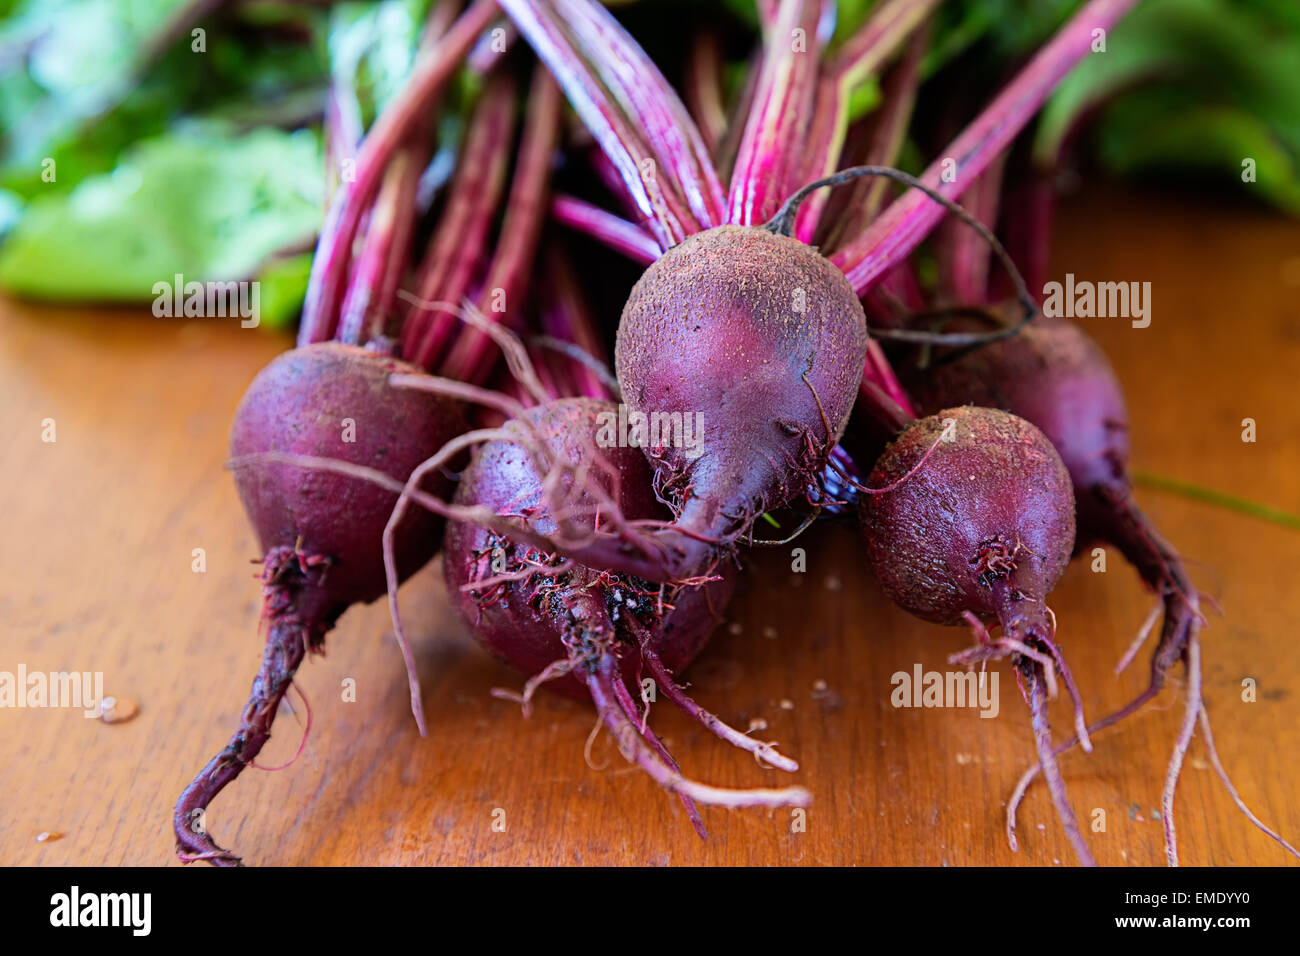 Fresh garden beets on a wooden table. Stock Photo